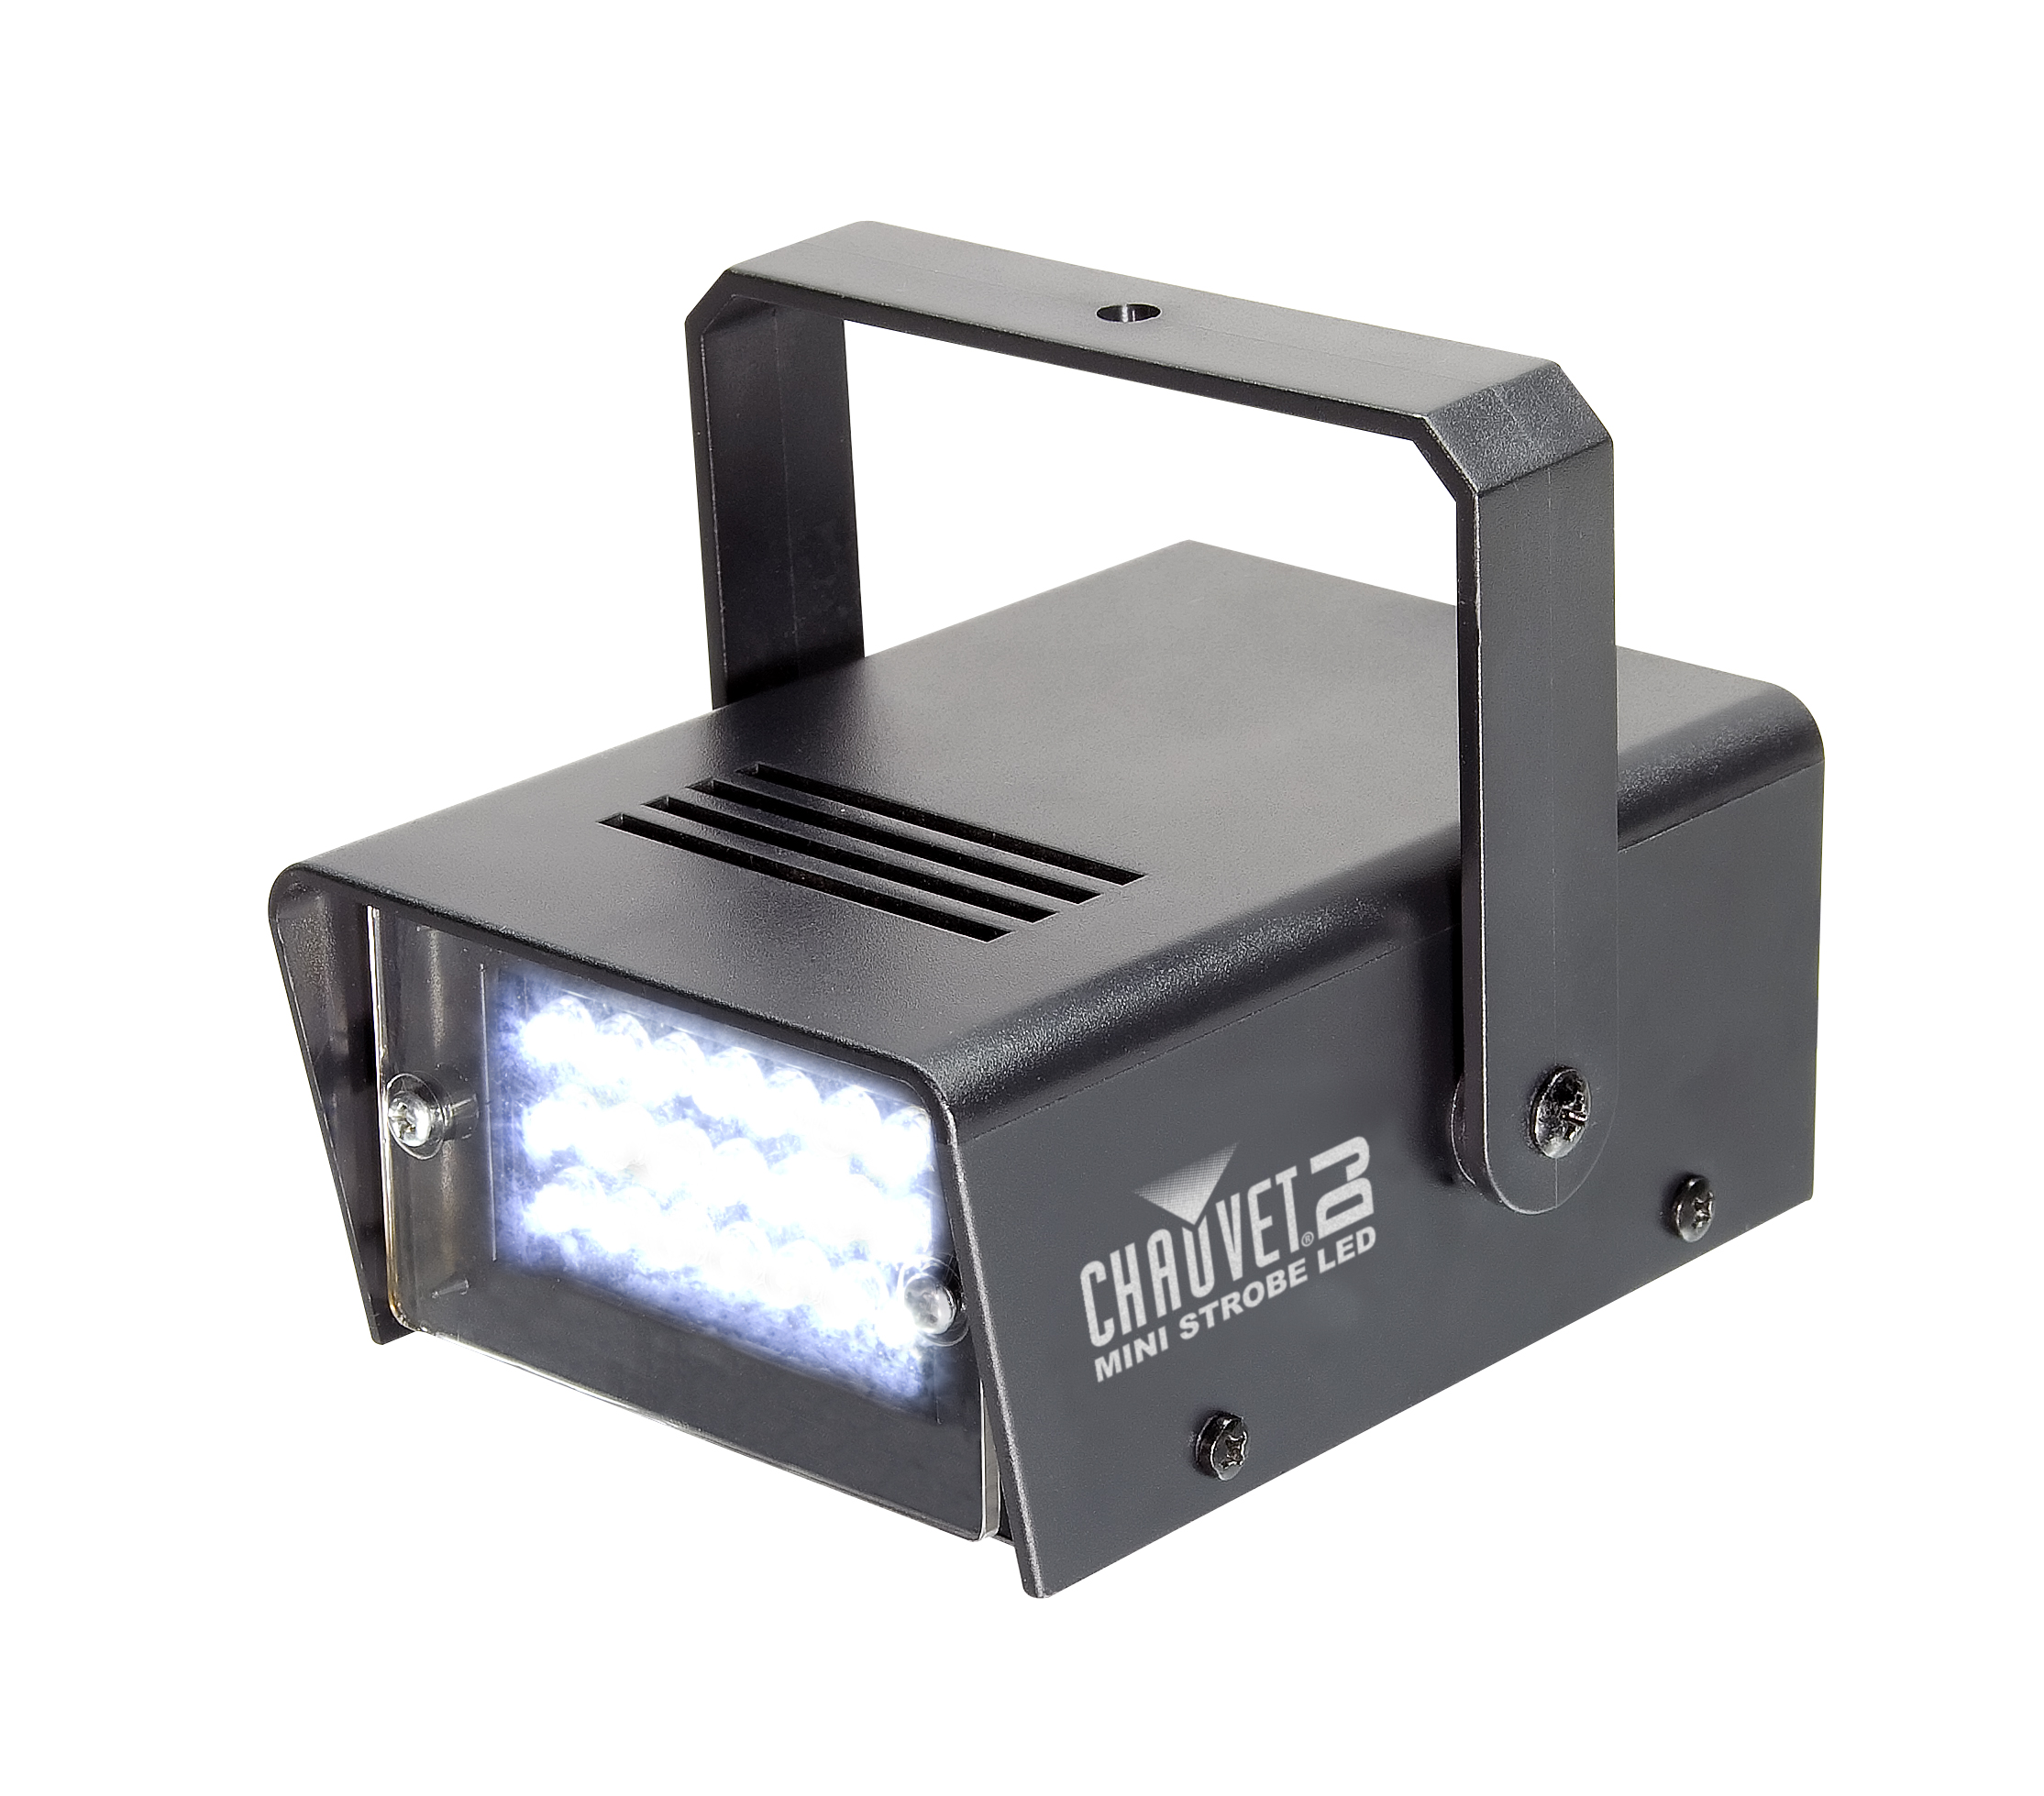 Chauvet Mini LED Strobe Light